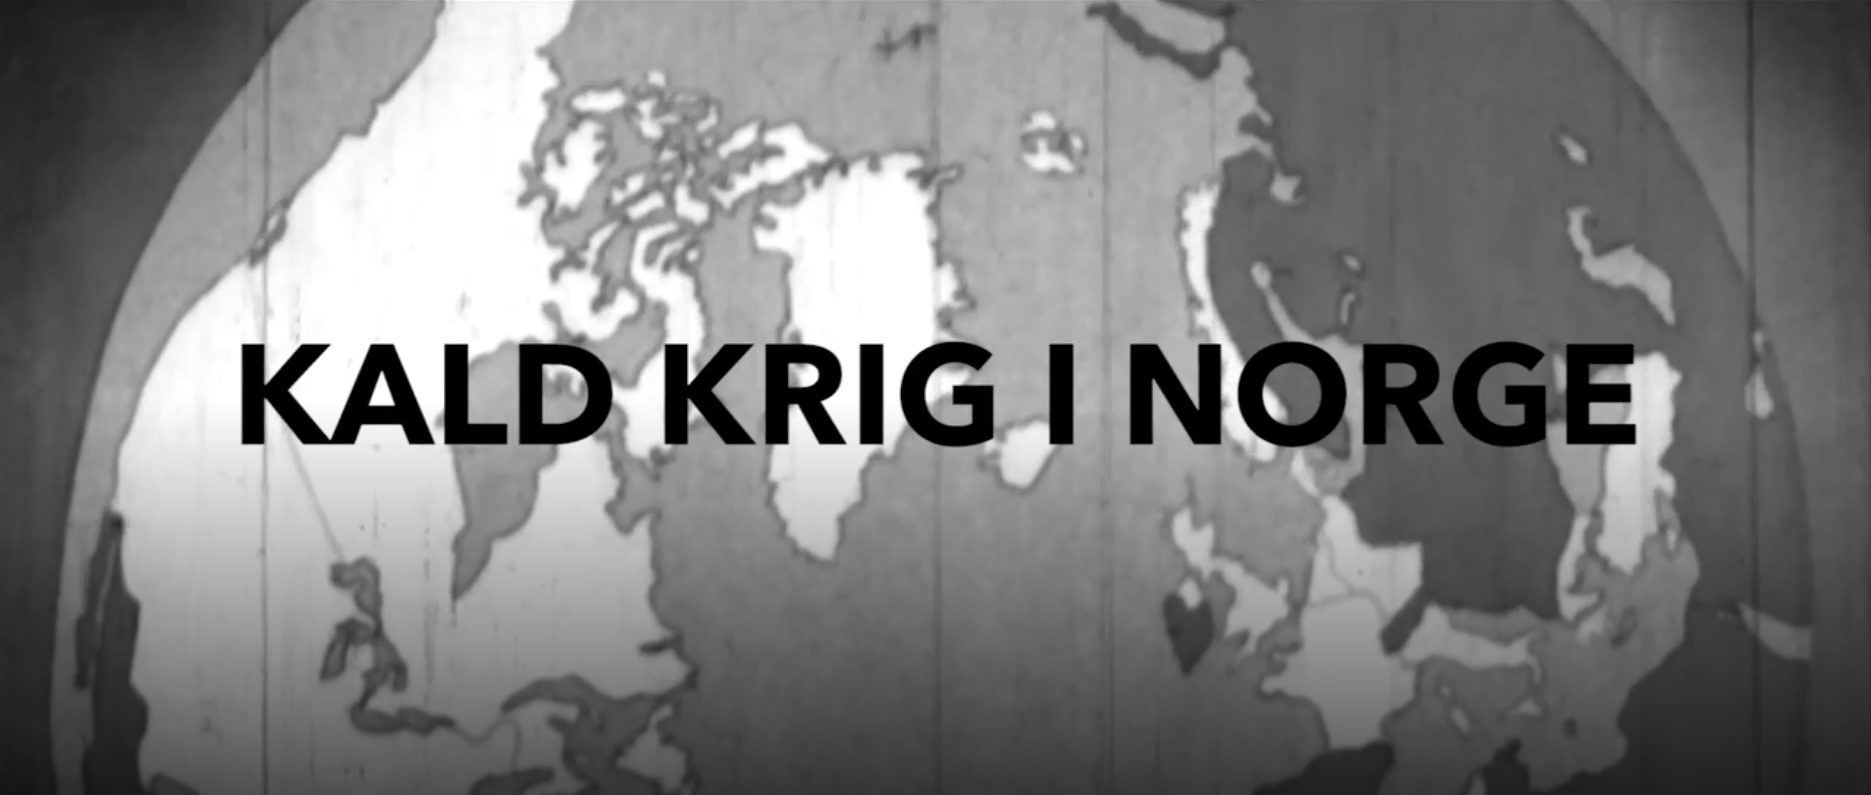 Kald krig i Norge/Cold war i Norway - mini documentary/bonus material for The River